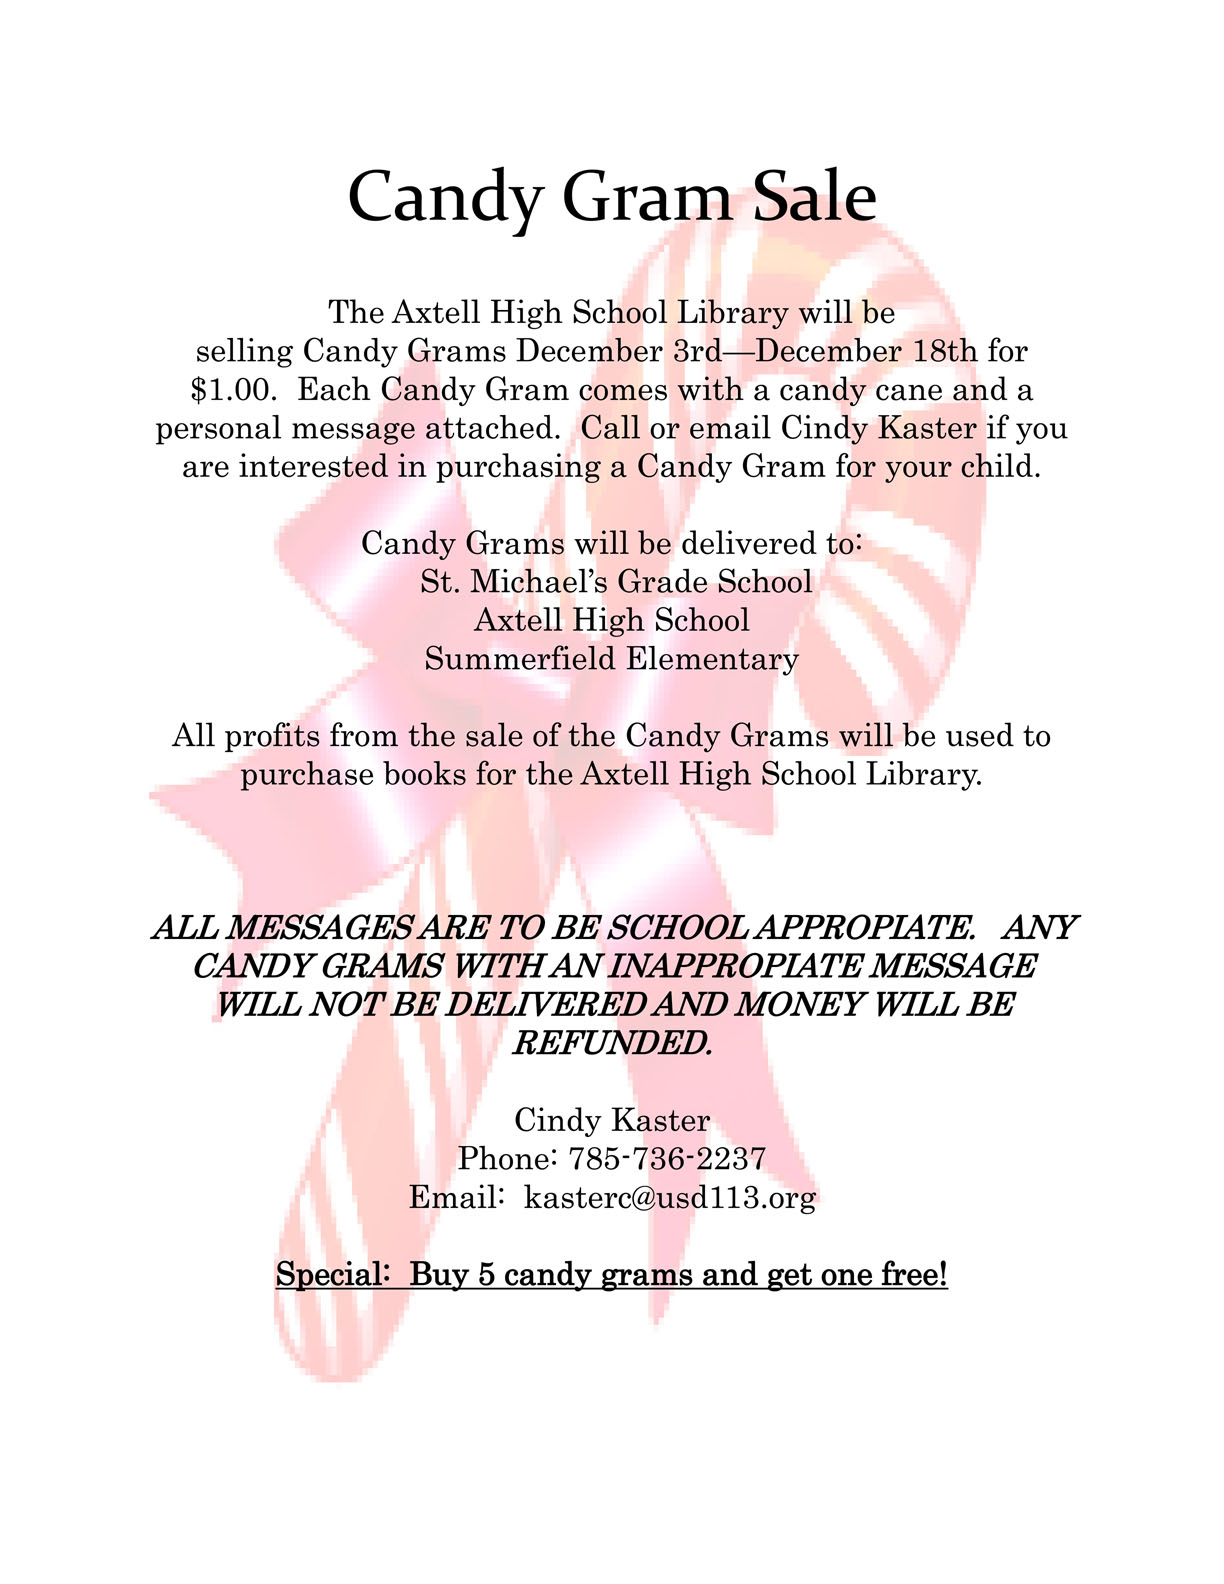 ... Hills USD 113 - Buy Holiday Candy Grams and Support the Library